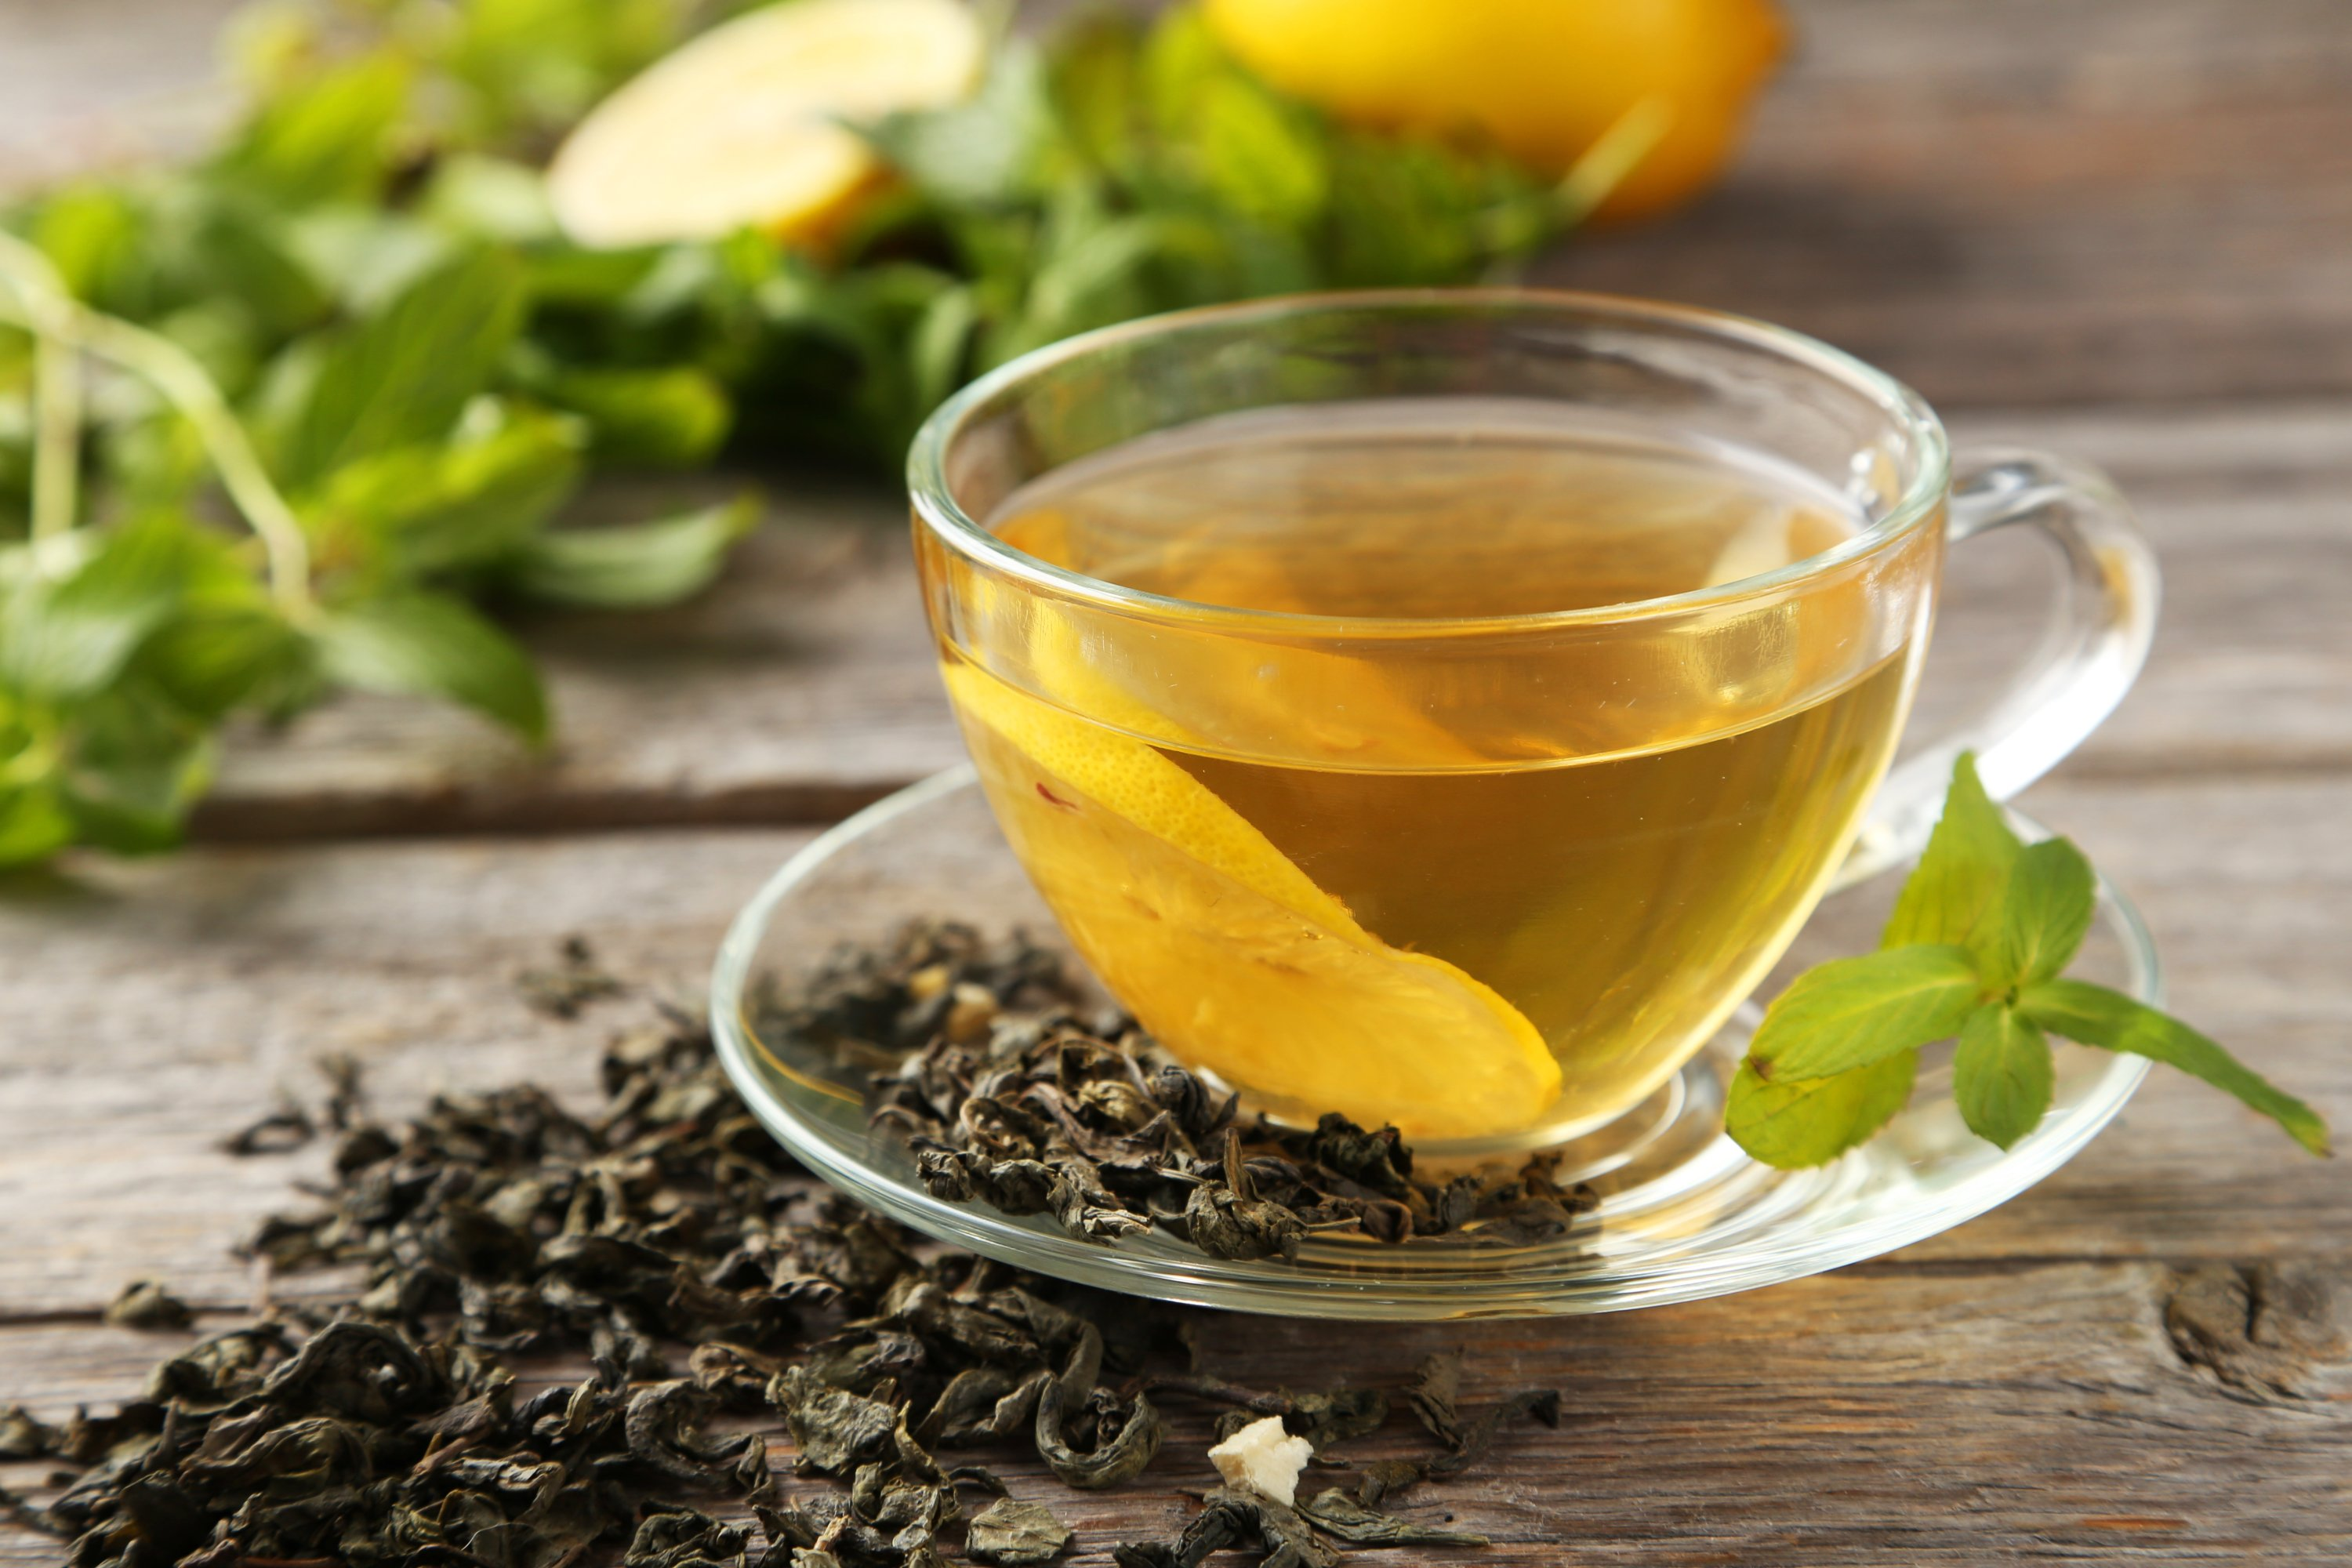 Green tea is one of the best antioxidant-rich beverages you can drink.(Shutterstock Photo)